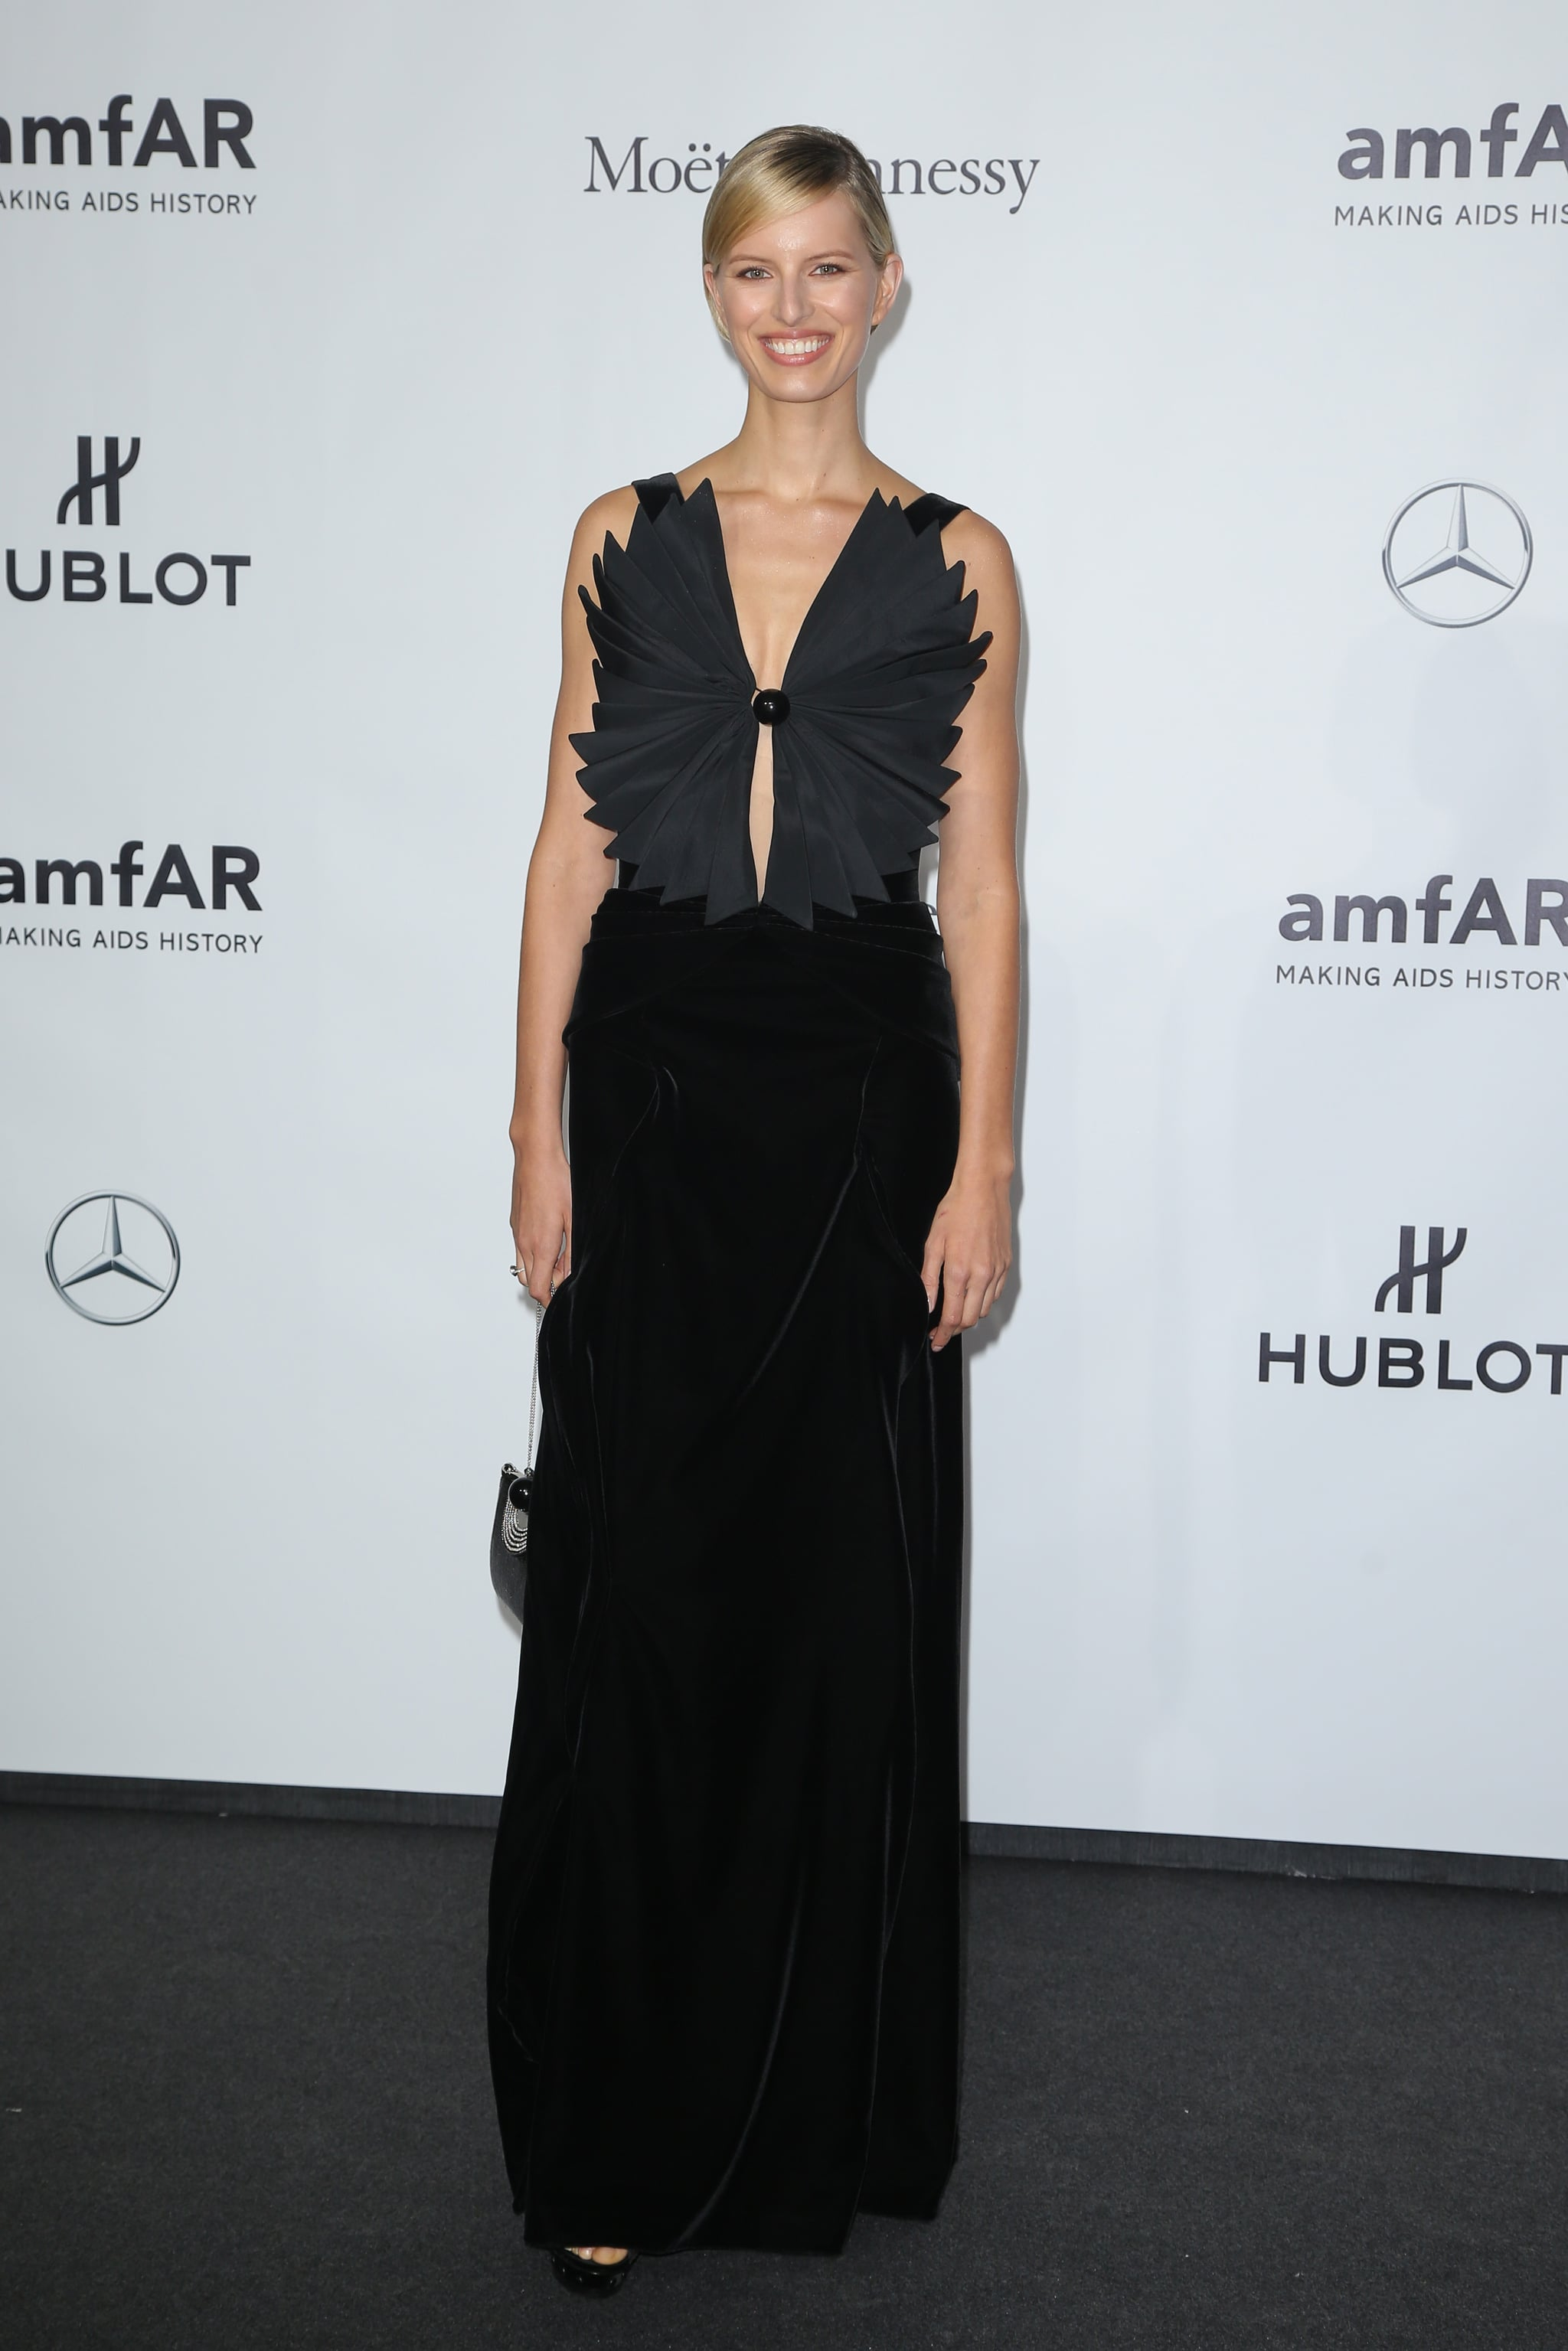 Karolina Kurkova's black gown was anything but ordinary at the amfAR Milano gala. We couldn't stop staring at that pleated origami bodice.